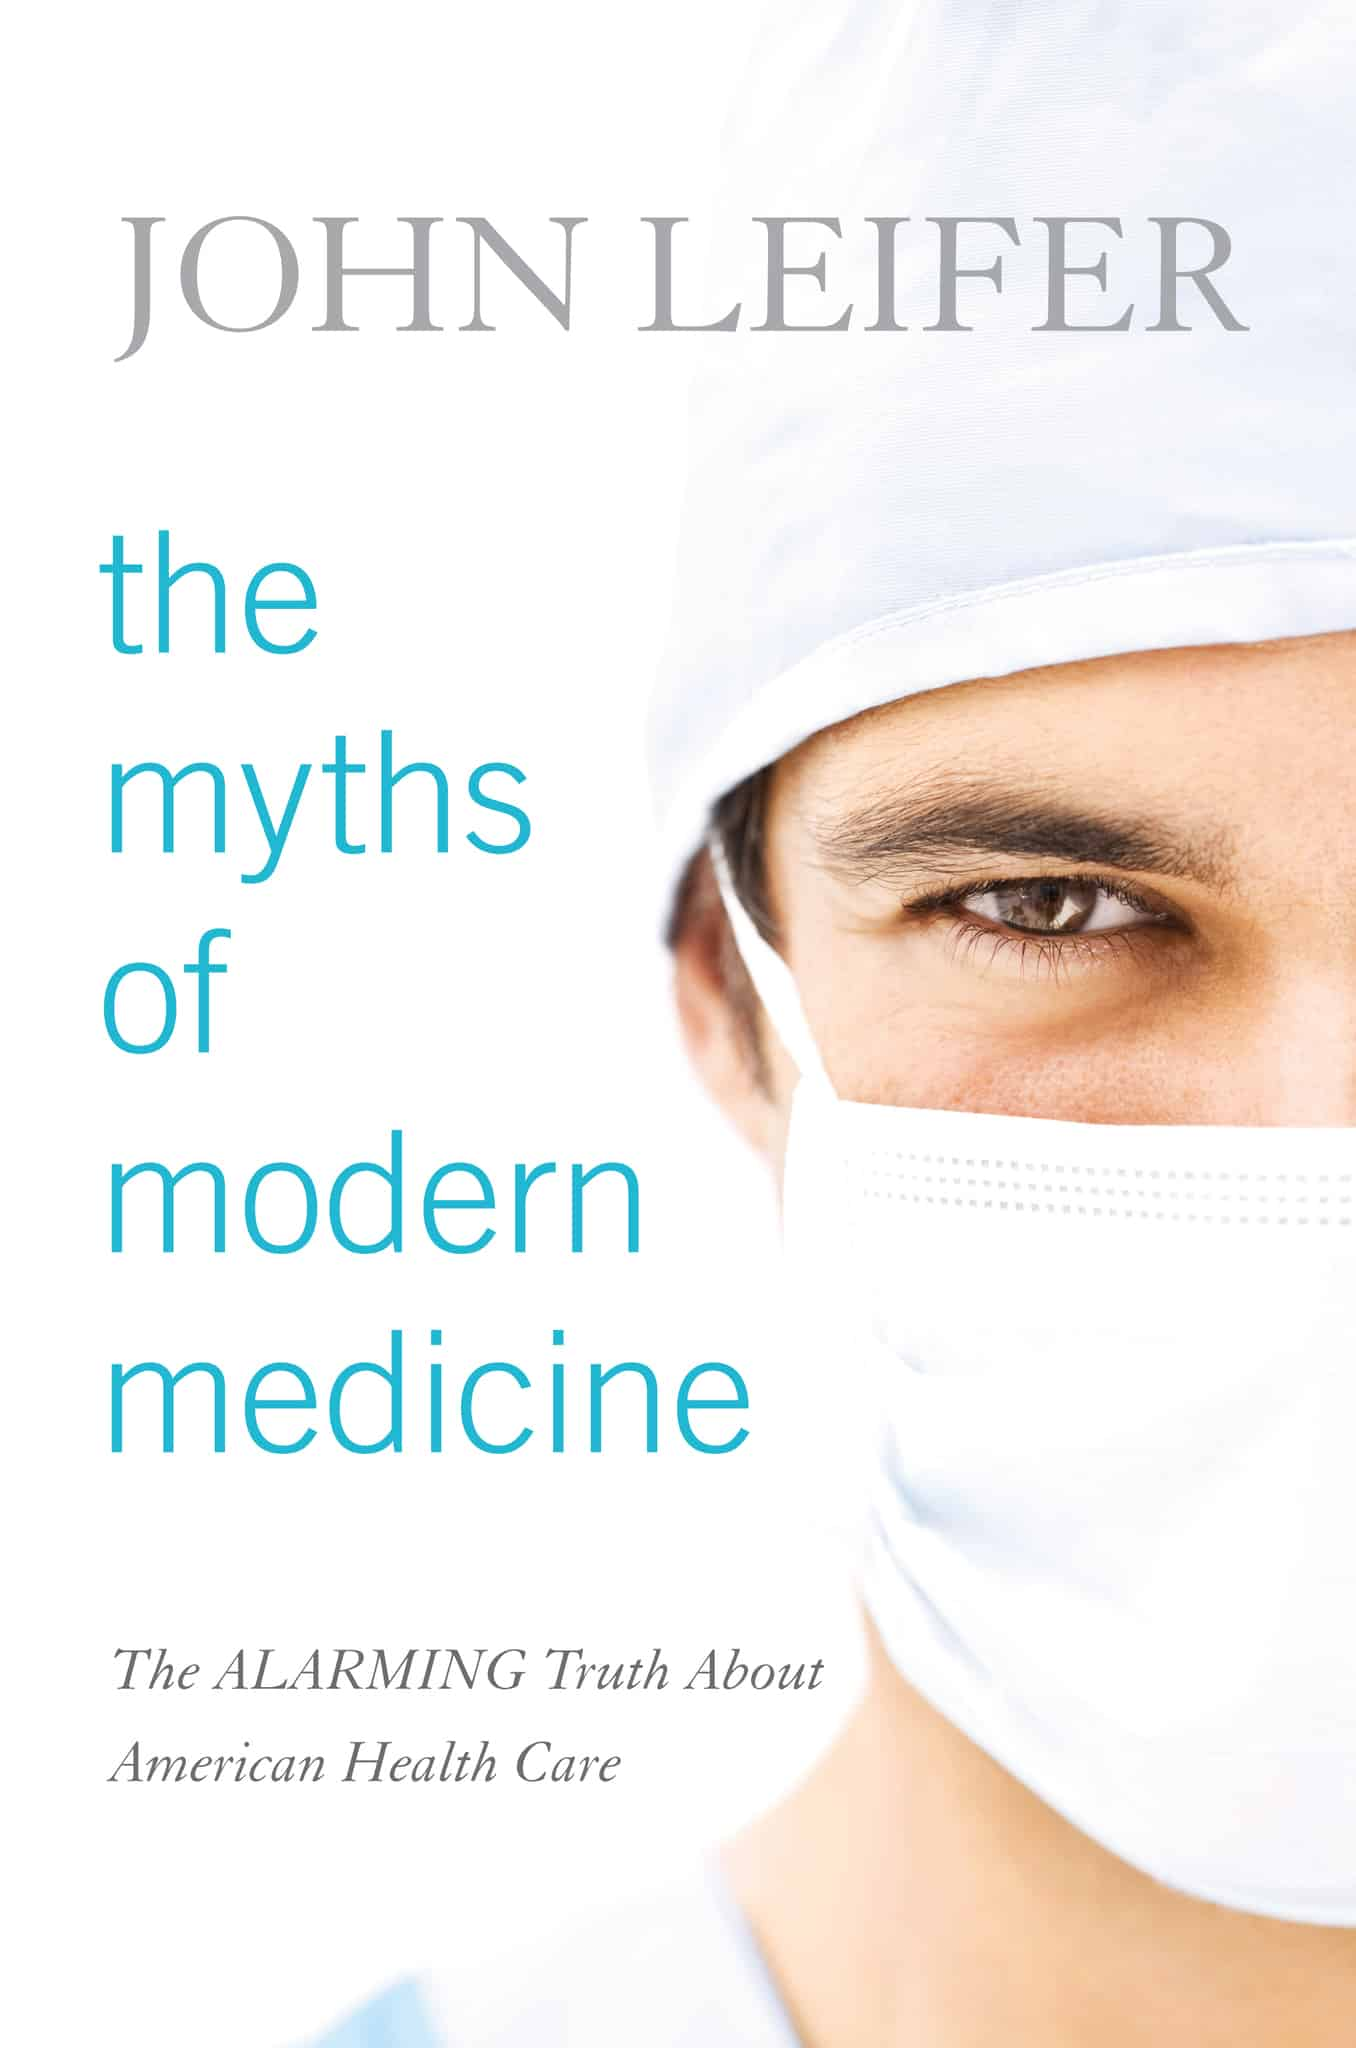 the myths of modern medicine 2014 john leifer - After You Hear It's Cancer